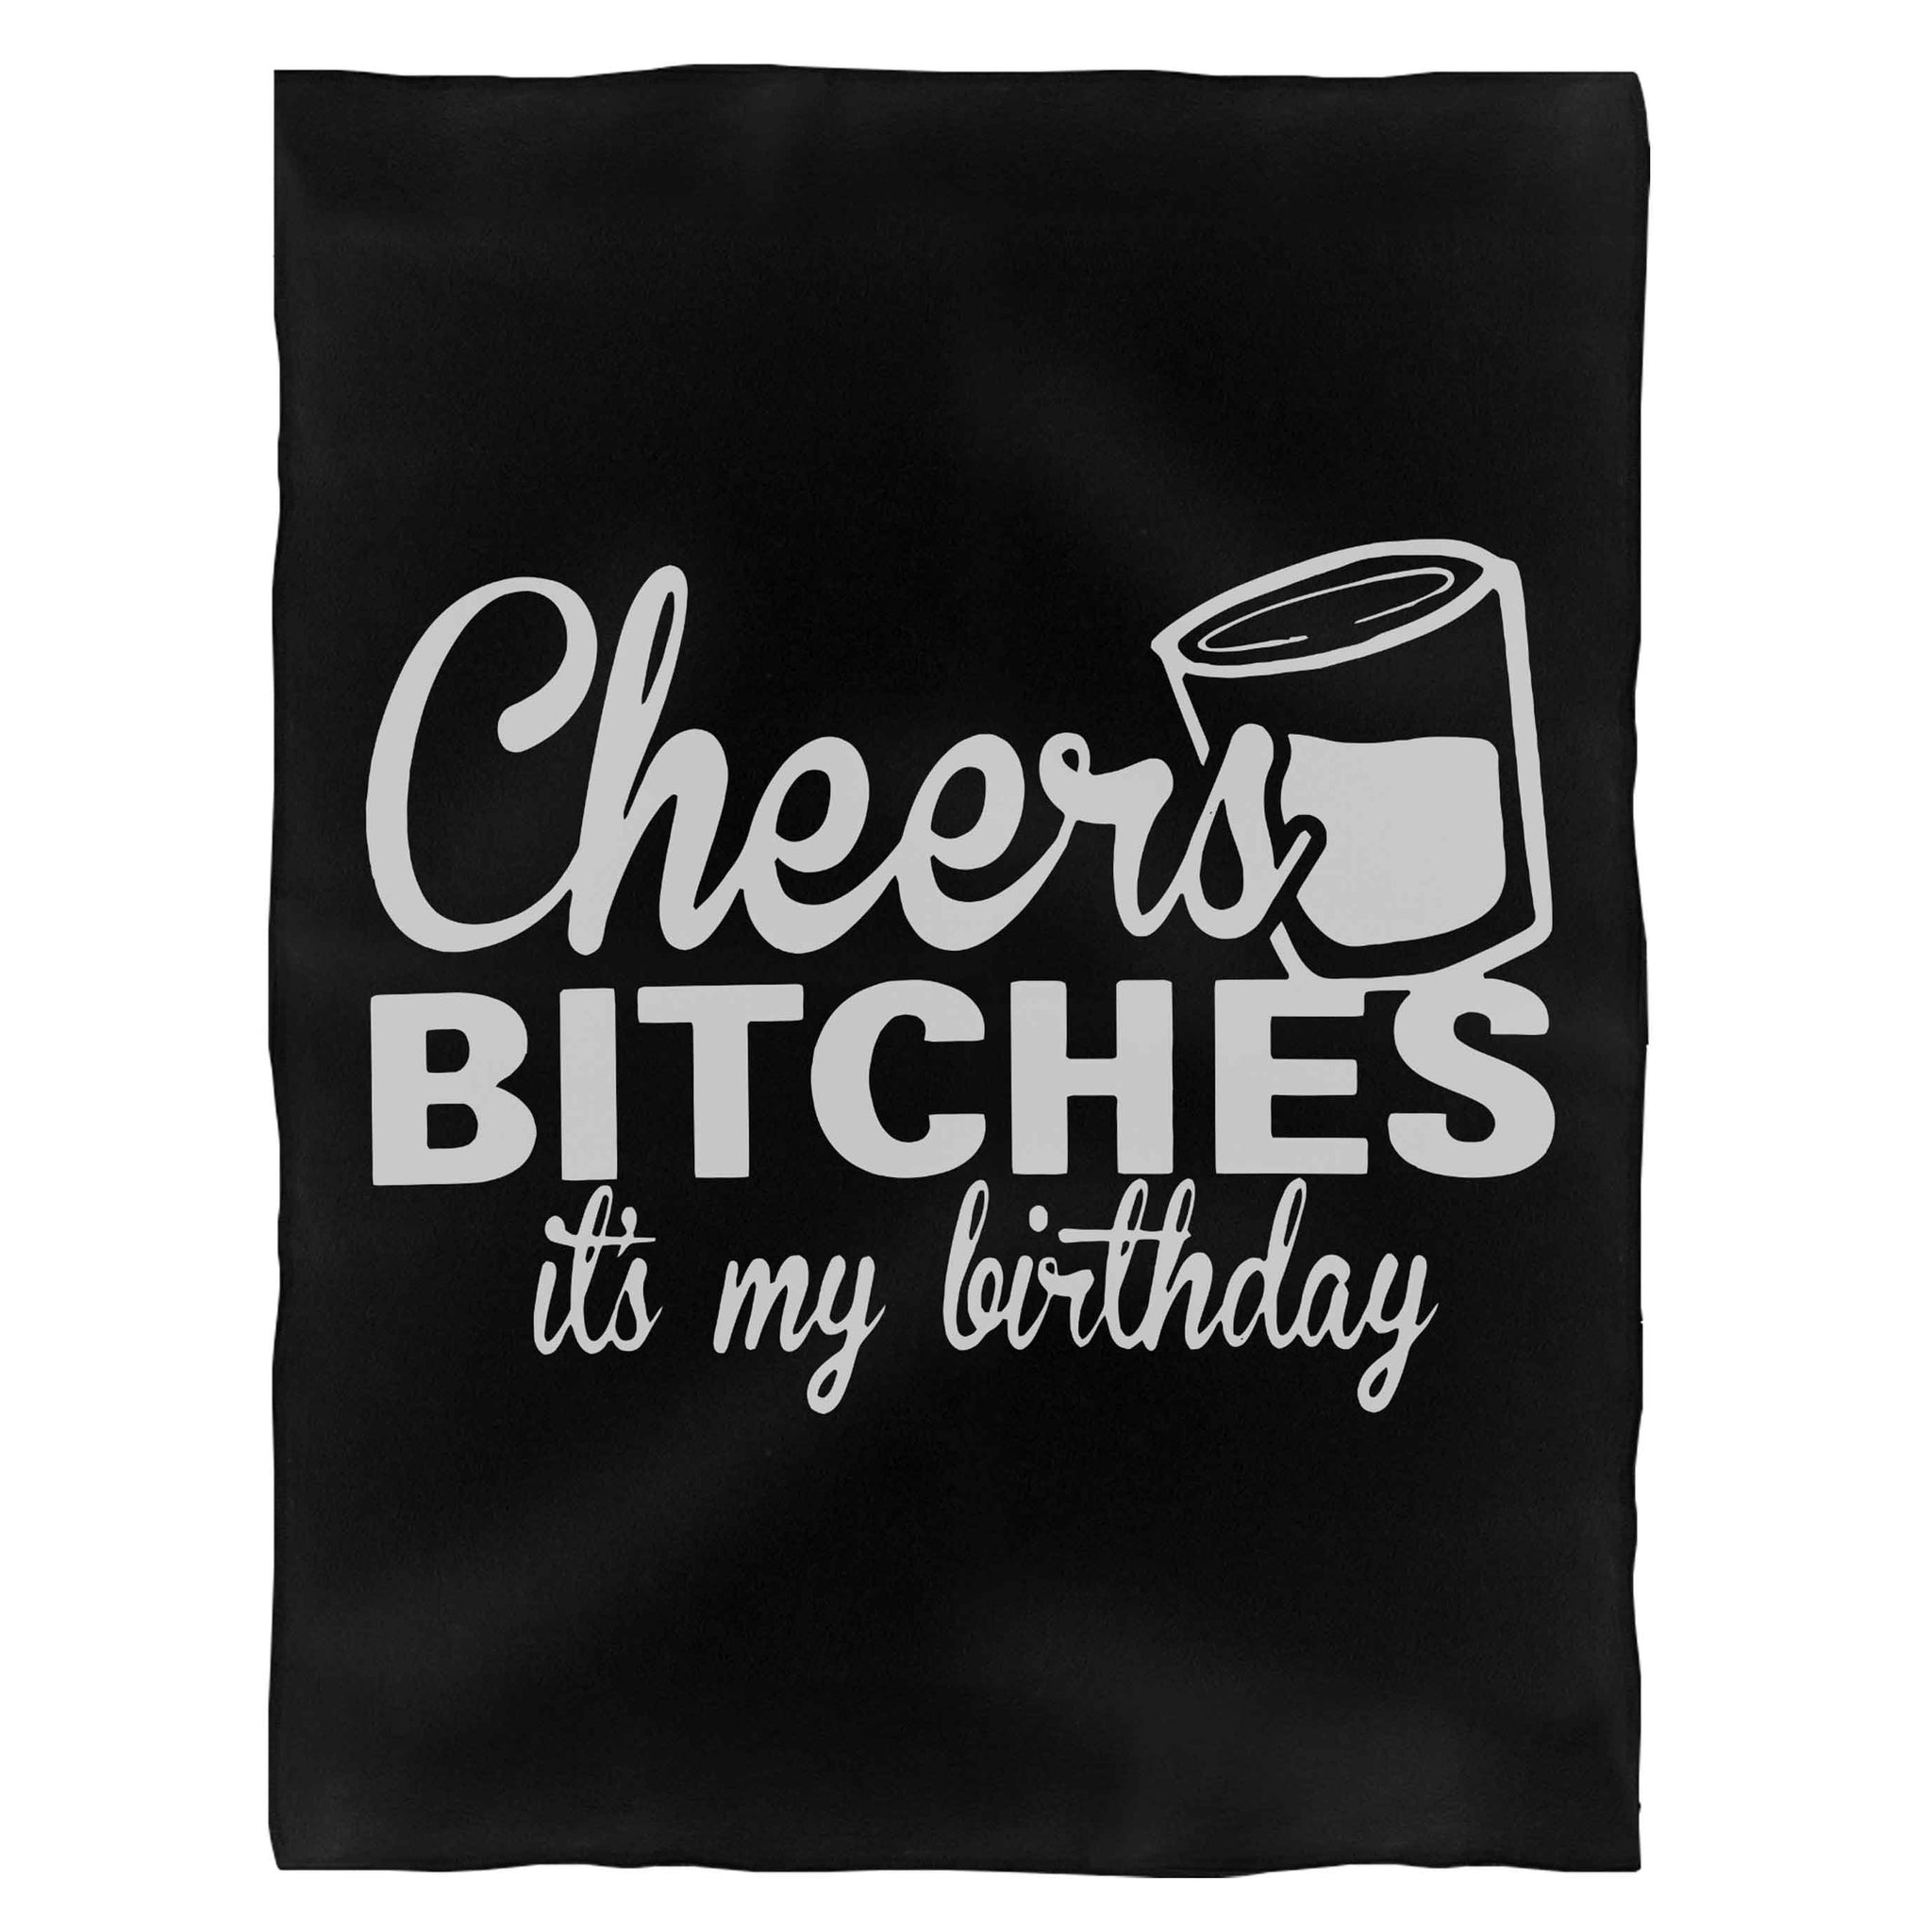 Cheers Bitches Its My Birthday Fleece Blanket